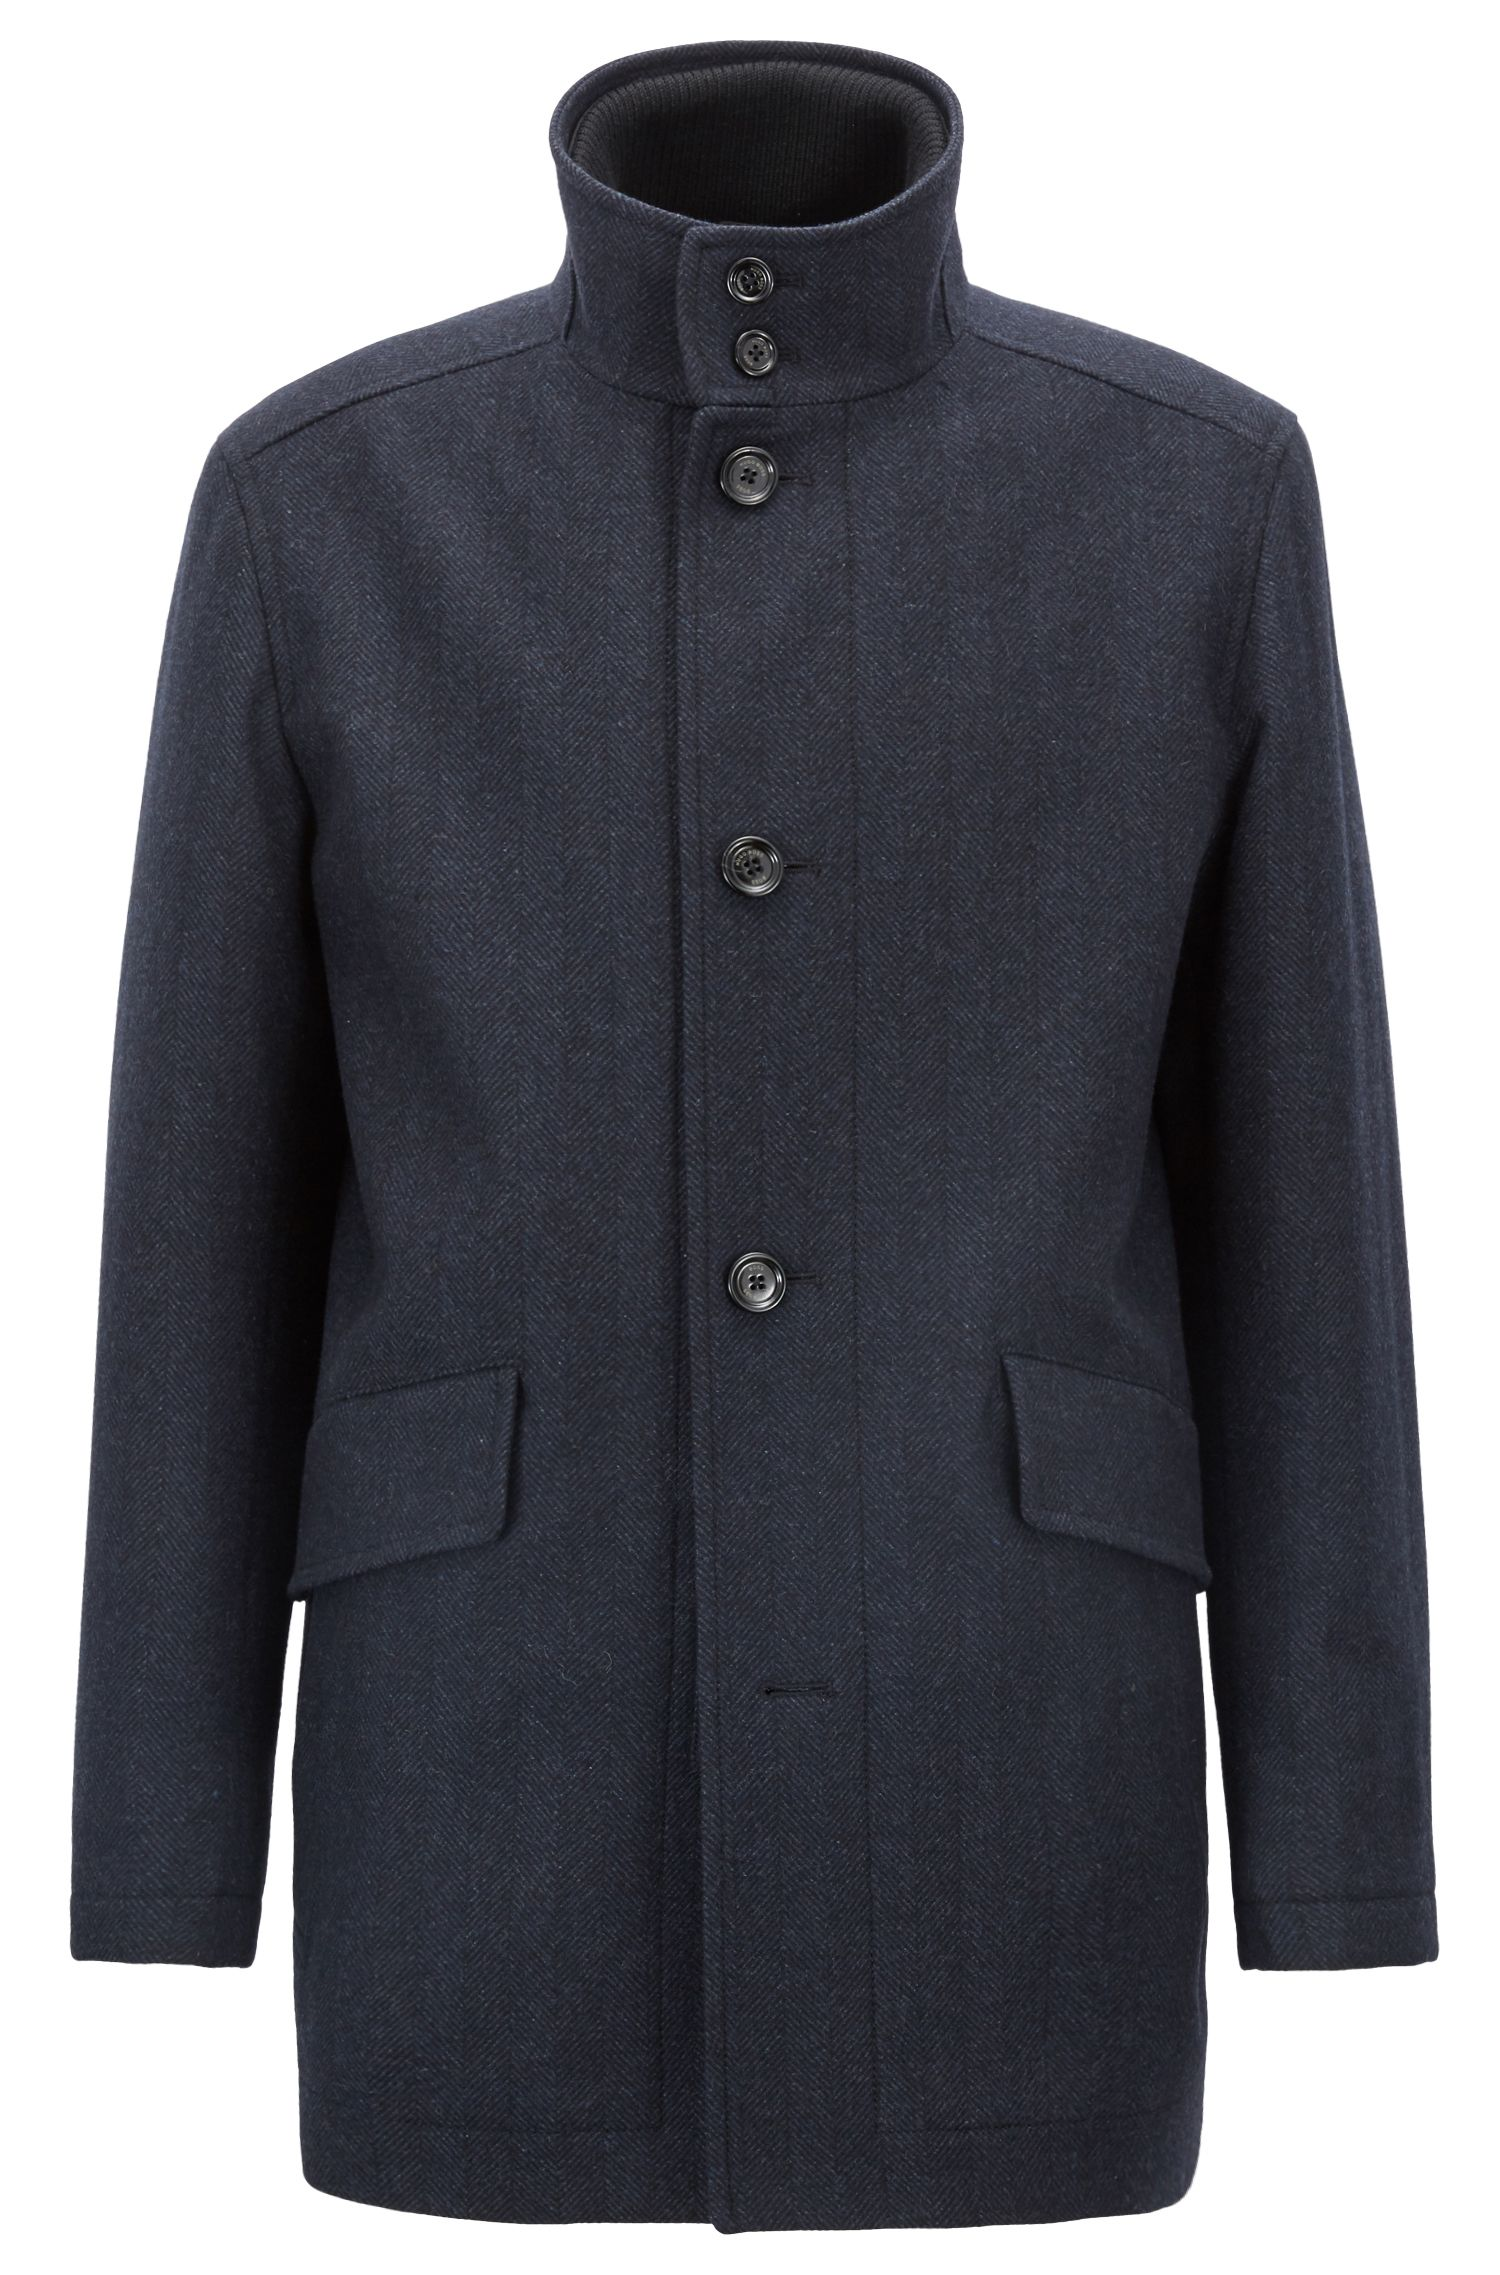 Relaxed-fit car coat in a herringbone wool blend, Dark Blue